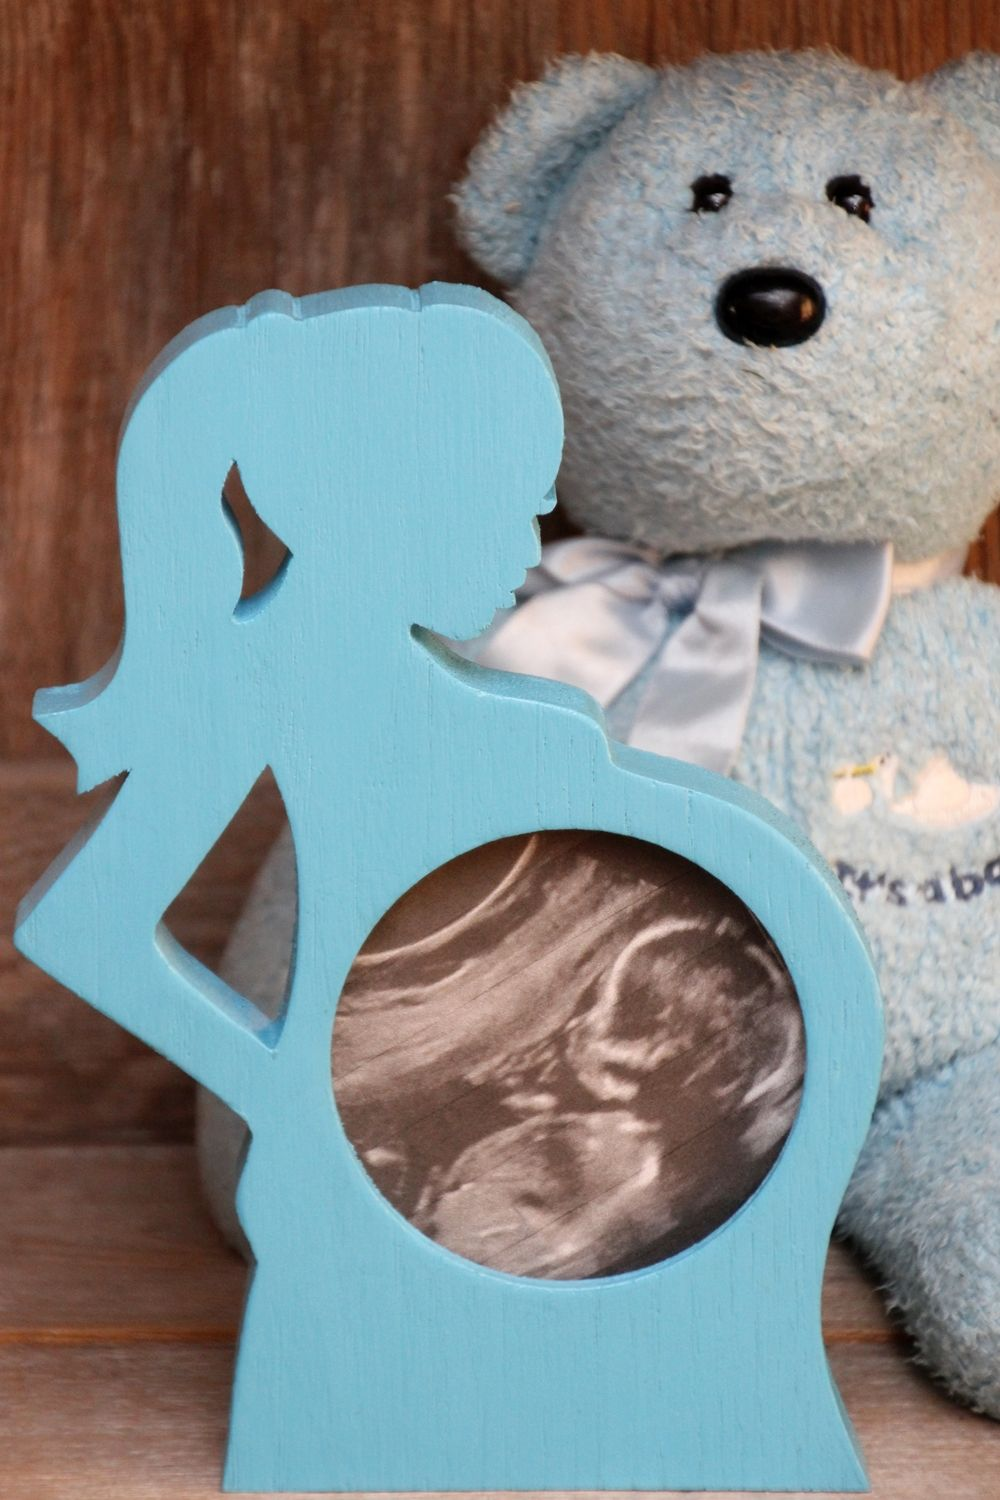 click on this link to purchase or click one of the links below to order first photo ultrasound sonogram wood picture frame silhouette baby bump expectant